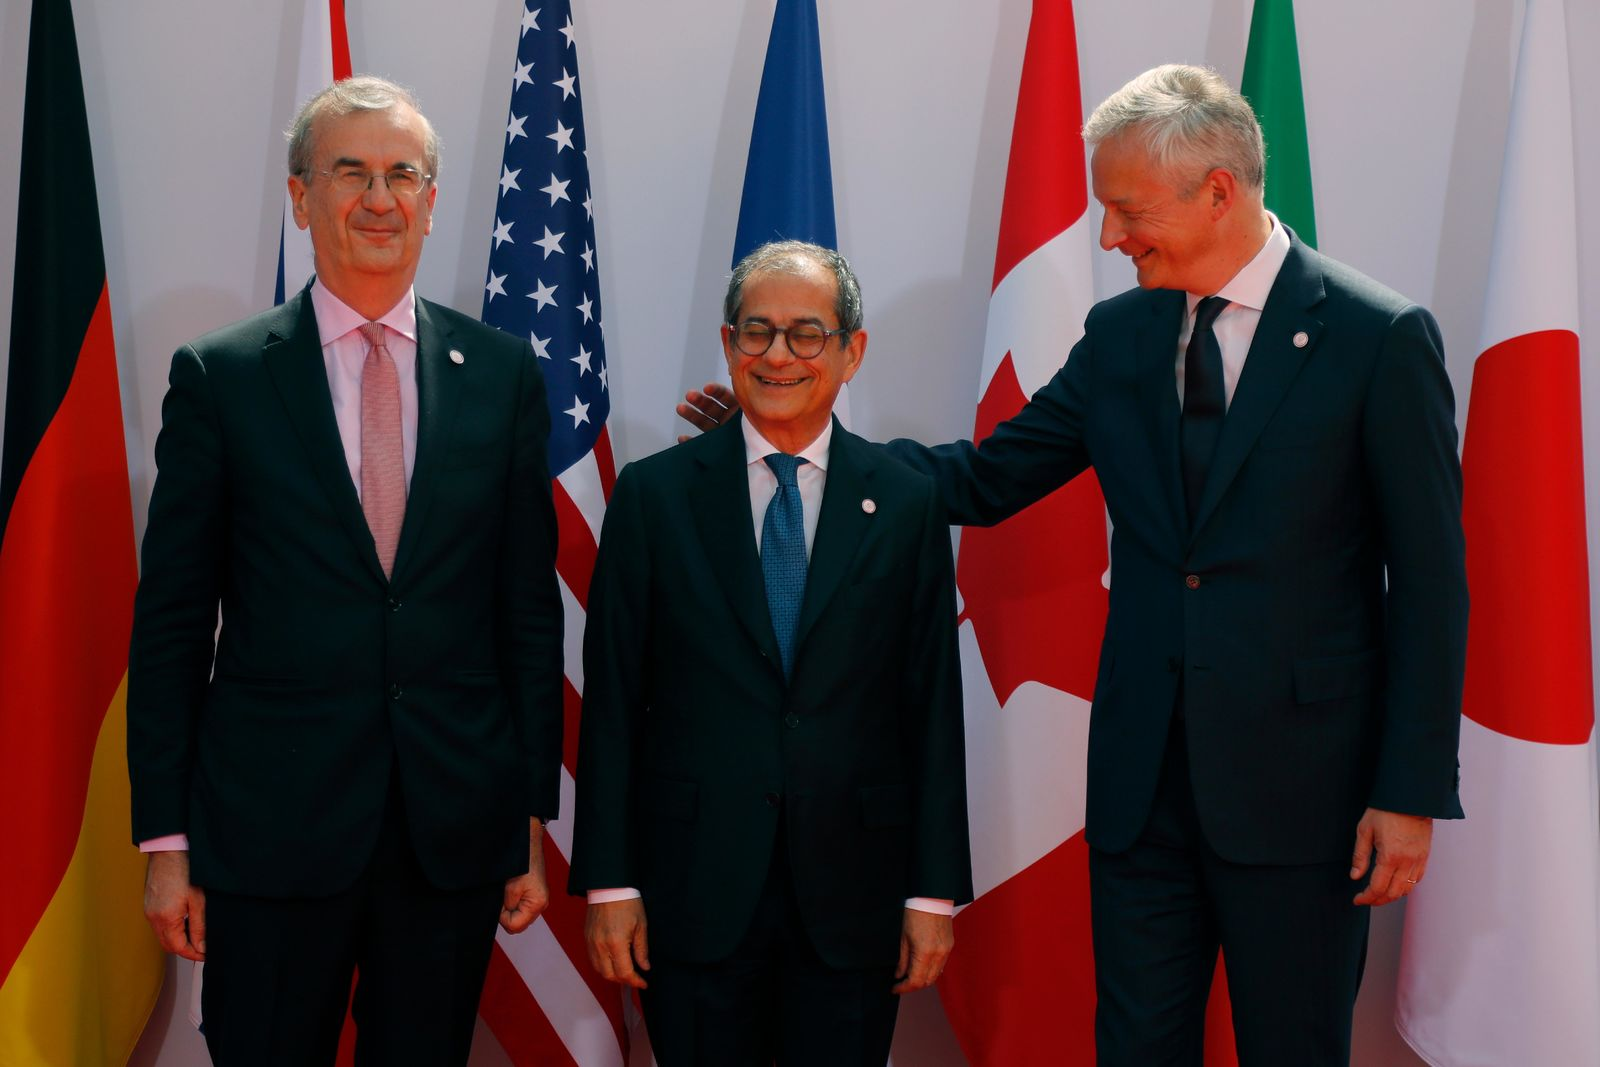 French Finance Minister Bruno Le Maire, right, welcomes Italian Economy and Finance Minister Giovanni Tria , center, with Governor of the Bank of France Francois Villeroy de Galhau, at the G-7 Finance Wednesday July 17, 2019. (AP Photo/Michel Euler)